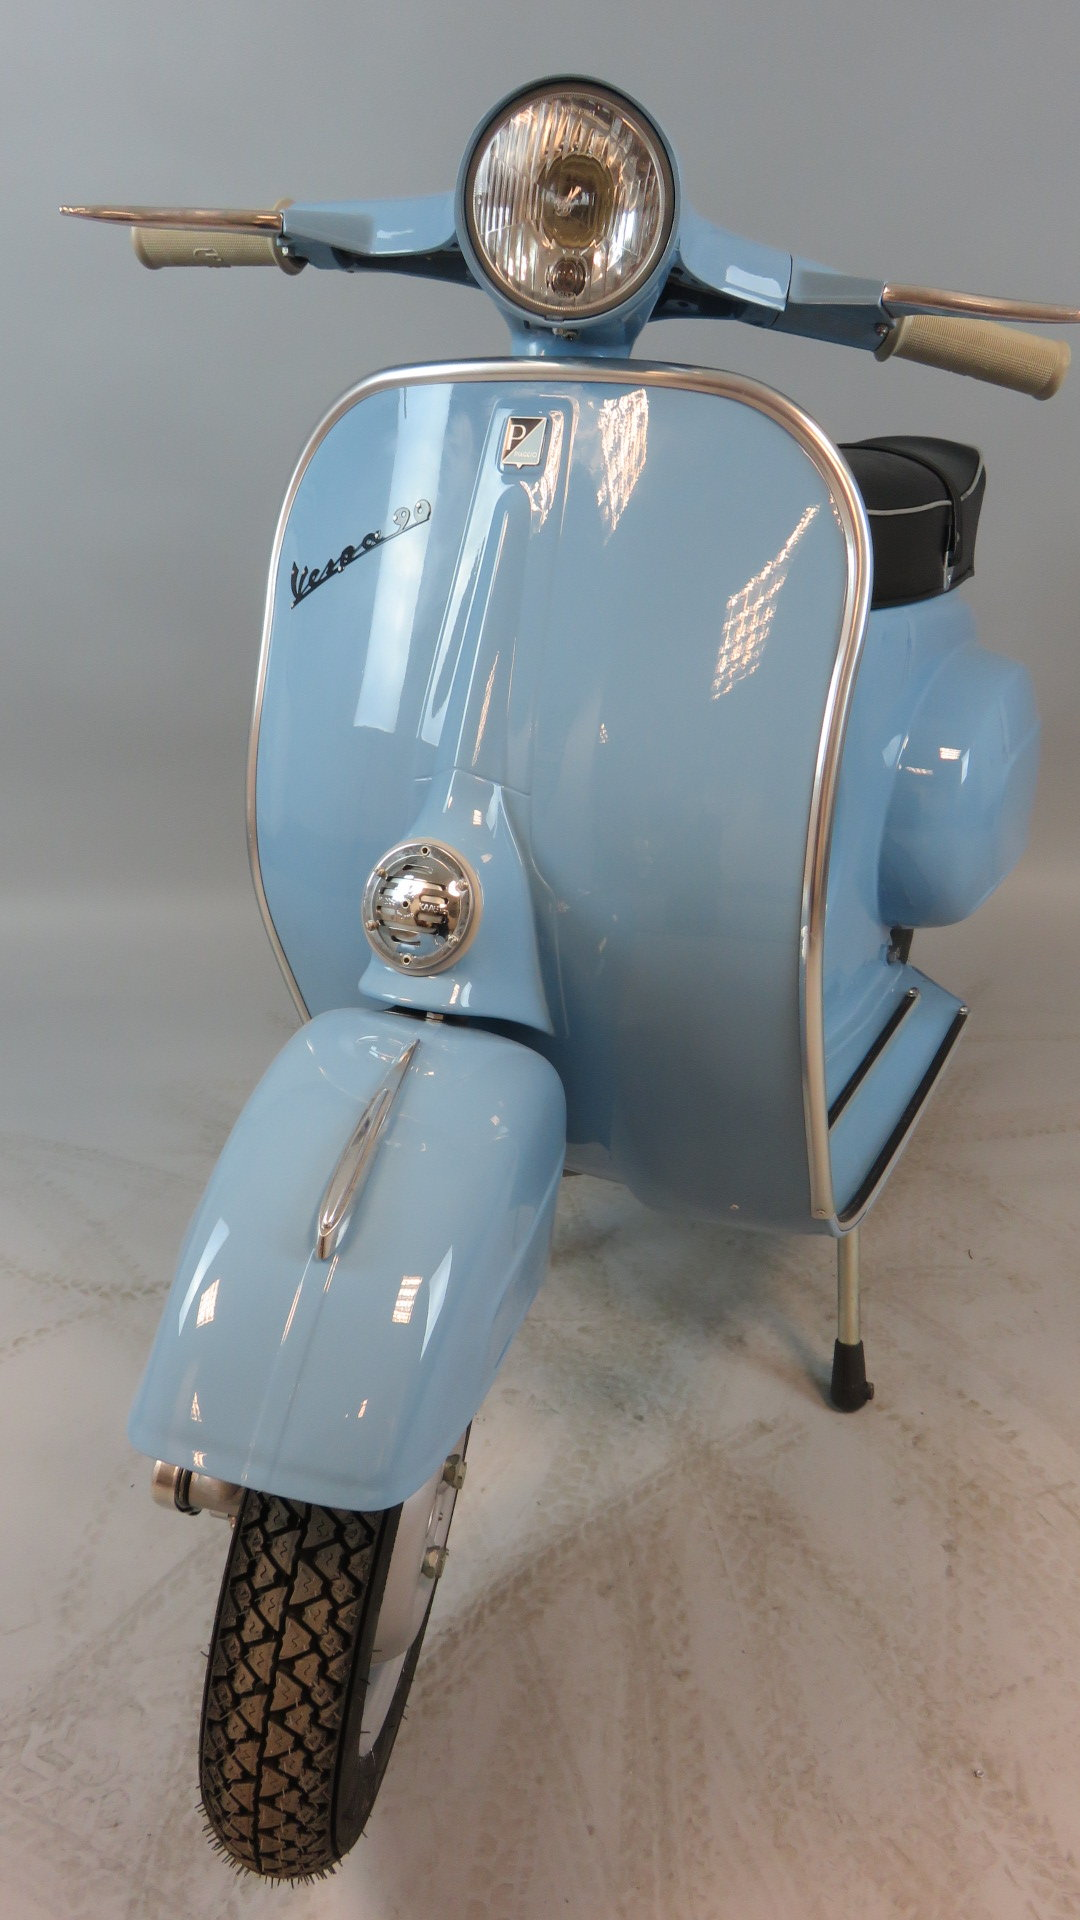 1964 Vespa 90 mk1 small door For Sale (picture 6 of 6)